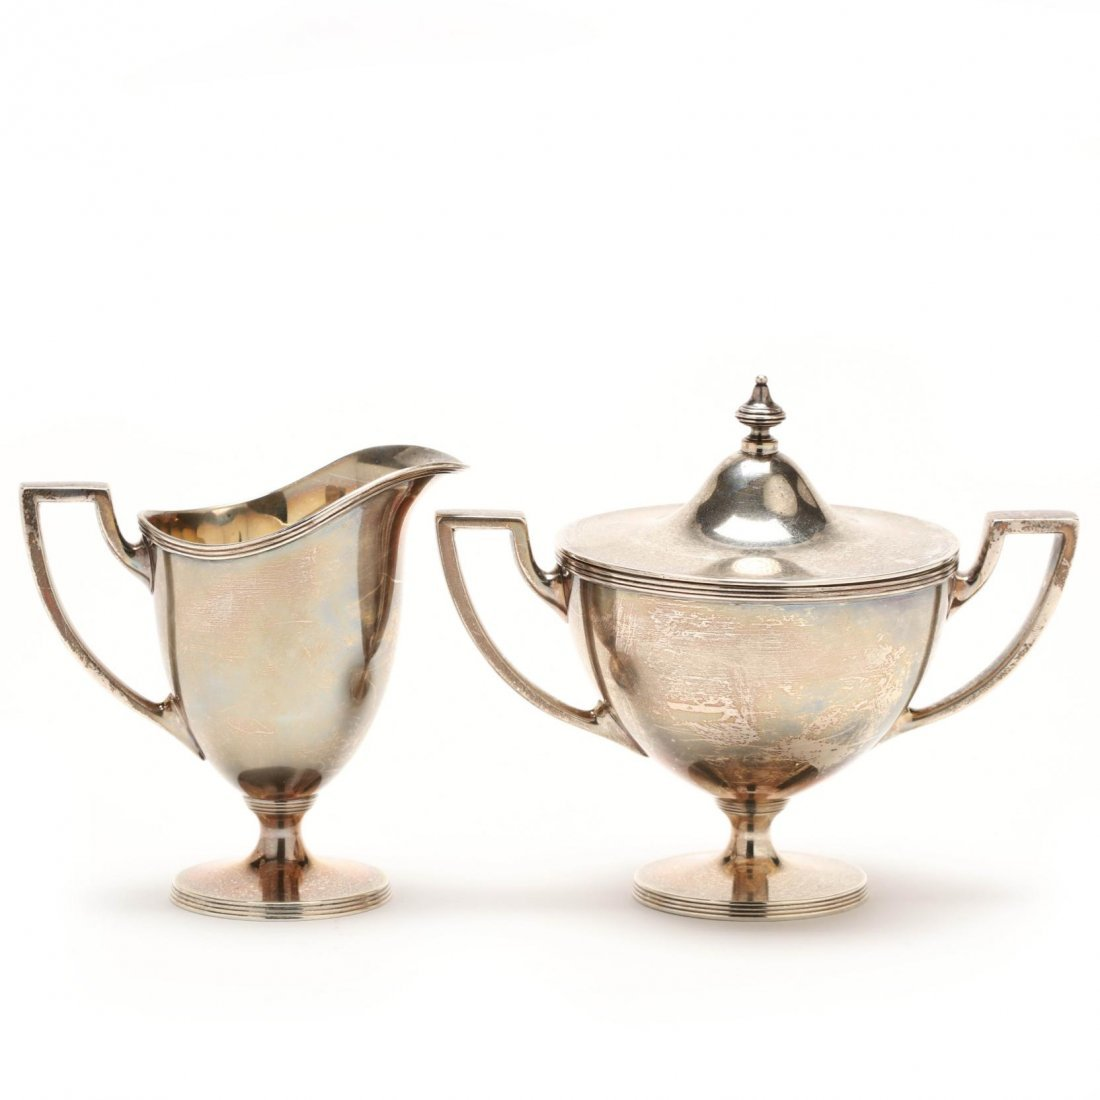 A Tiffany & Co. Sterling Silver Demitasse Set - 7